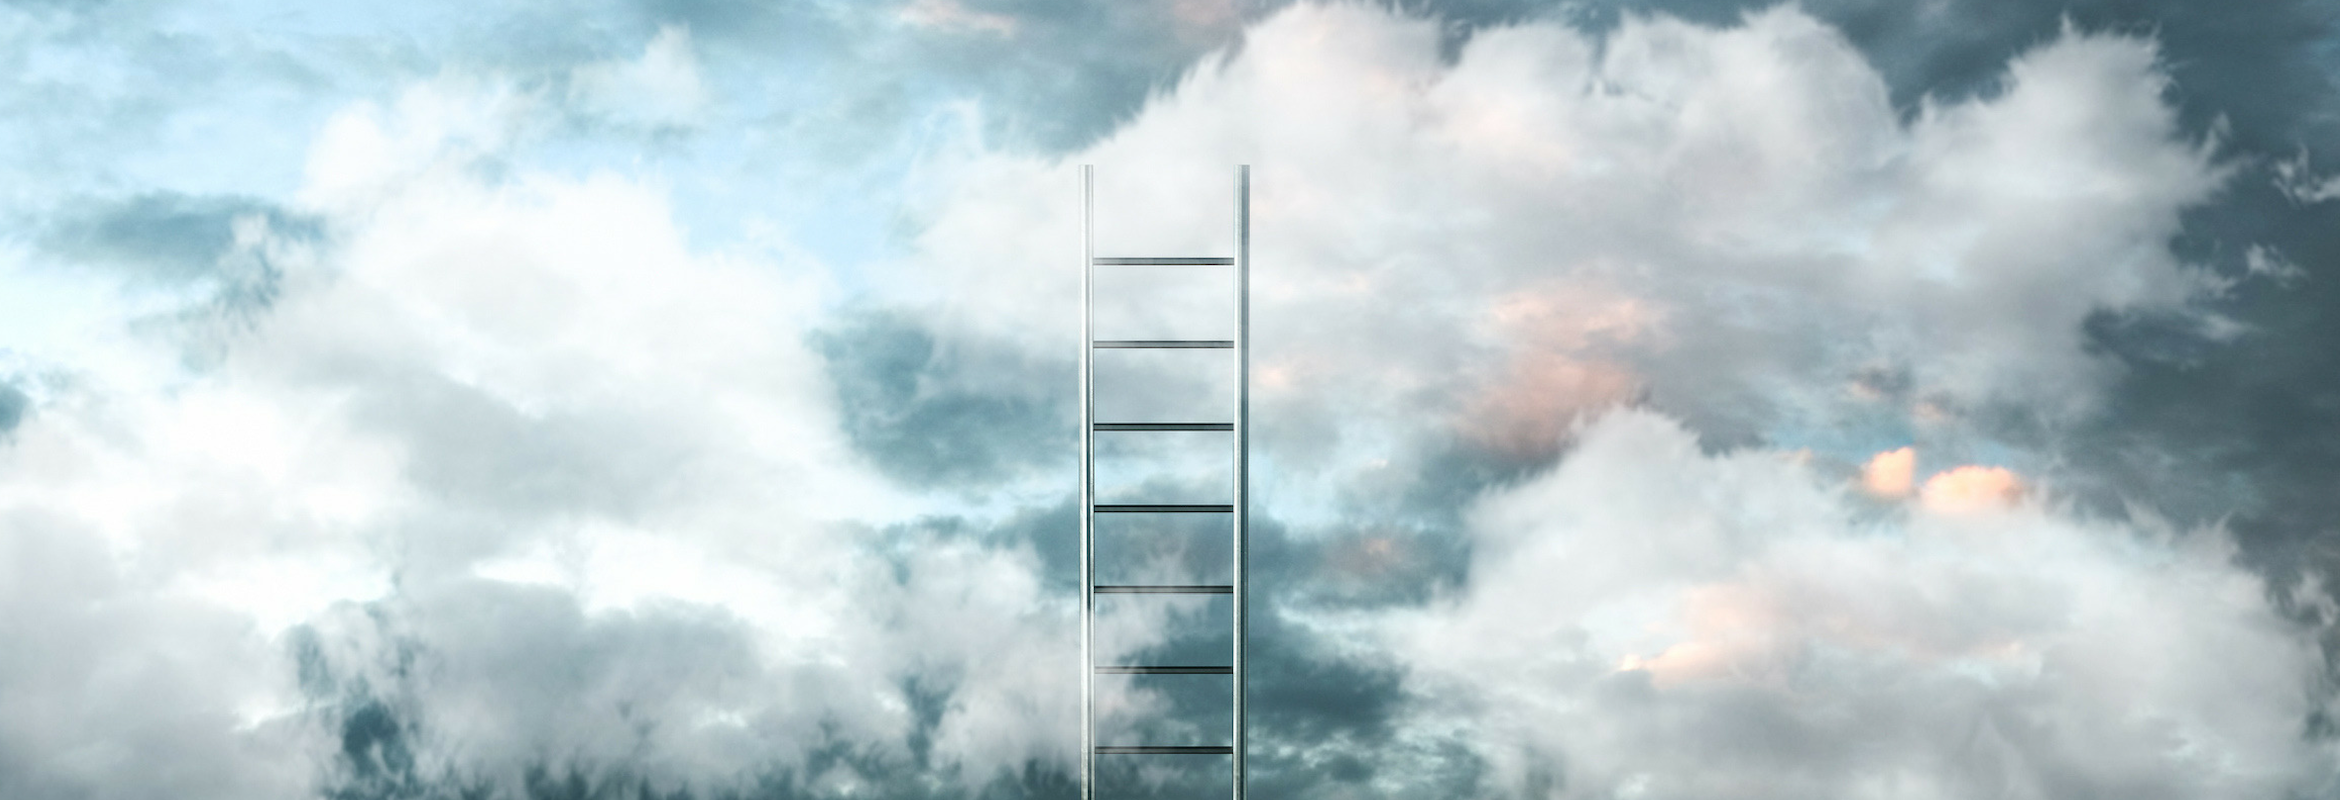 An image of a ladder in the clouds.